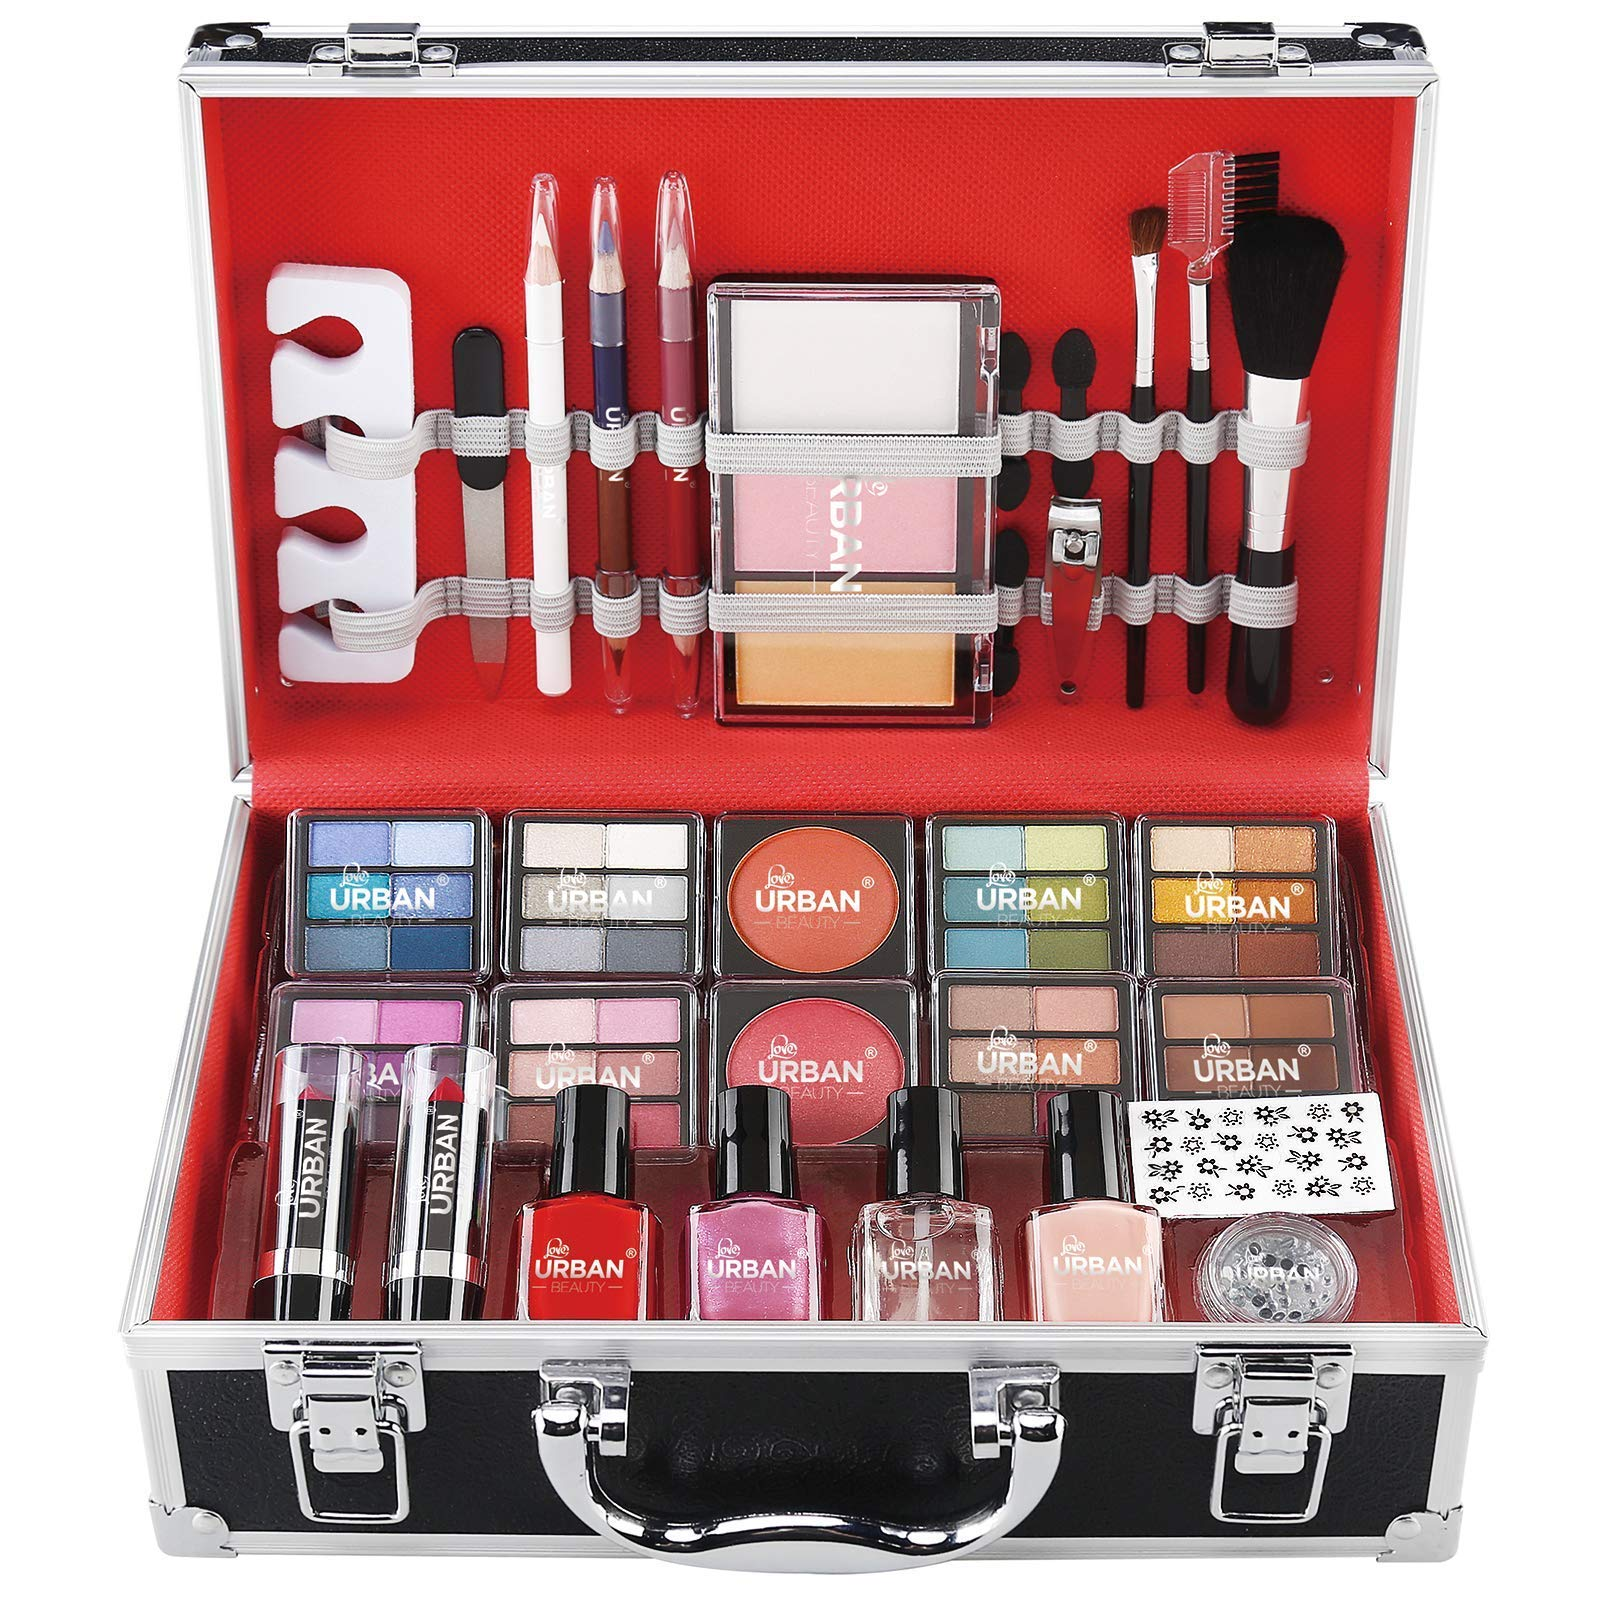 Love Urban Beauty - Divine Beauty French Manicure 76 Piece Makeup Box Gift Set - Eyeshadows Highlighter Lipstick Blush Brushes Teenage Vanity Carry Case